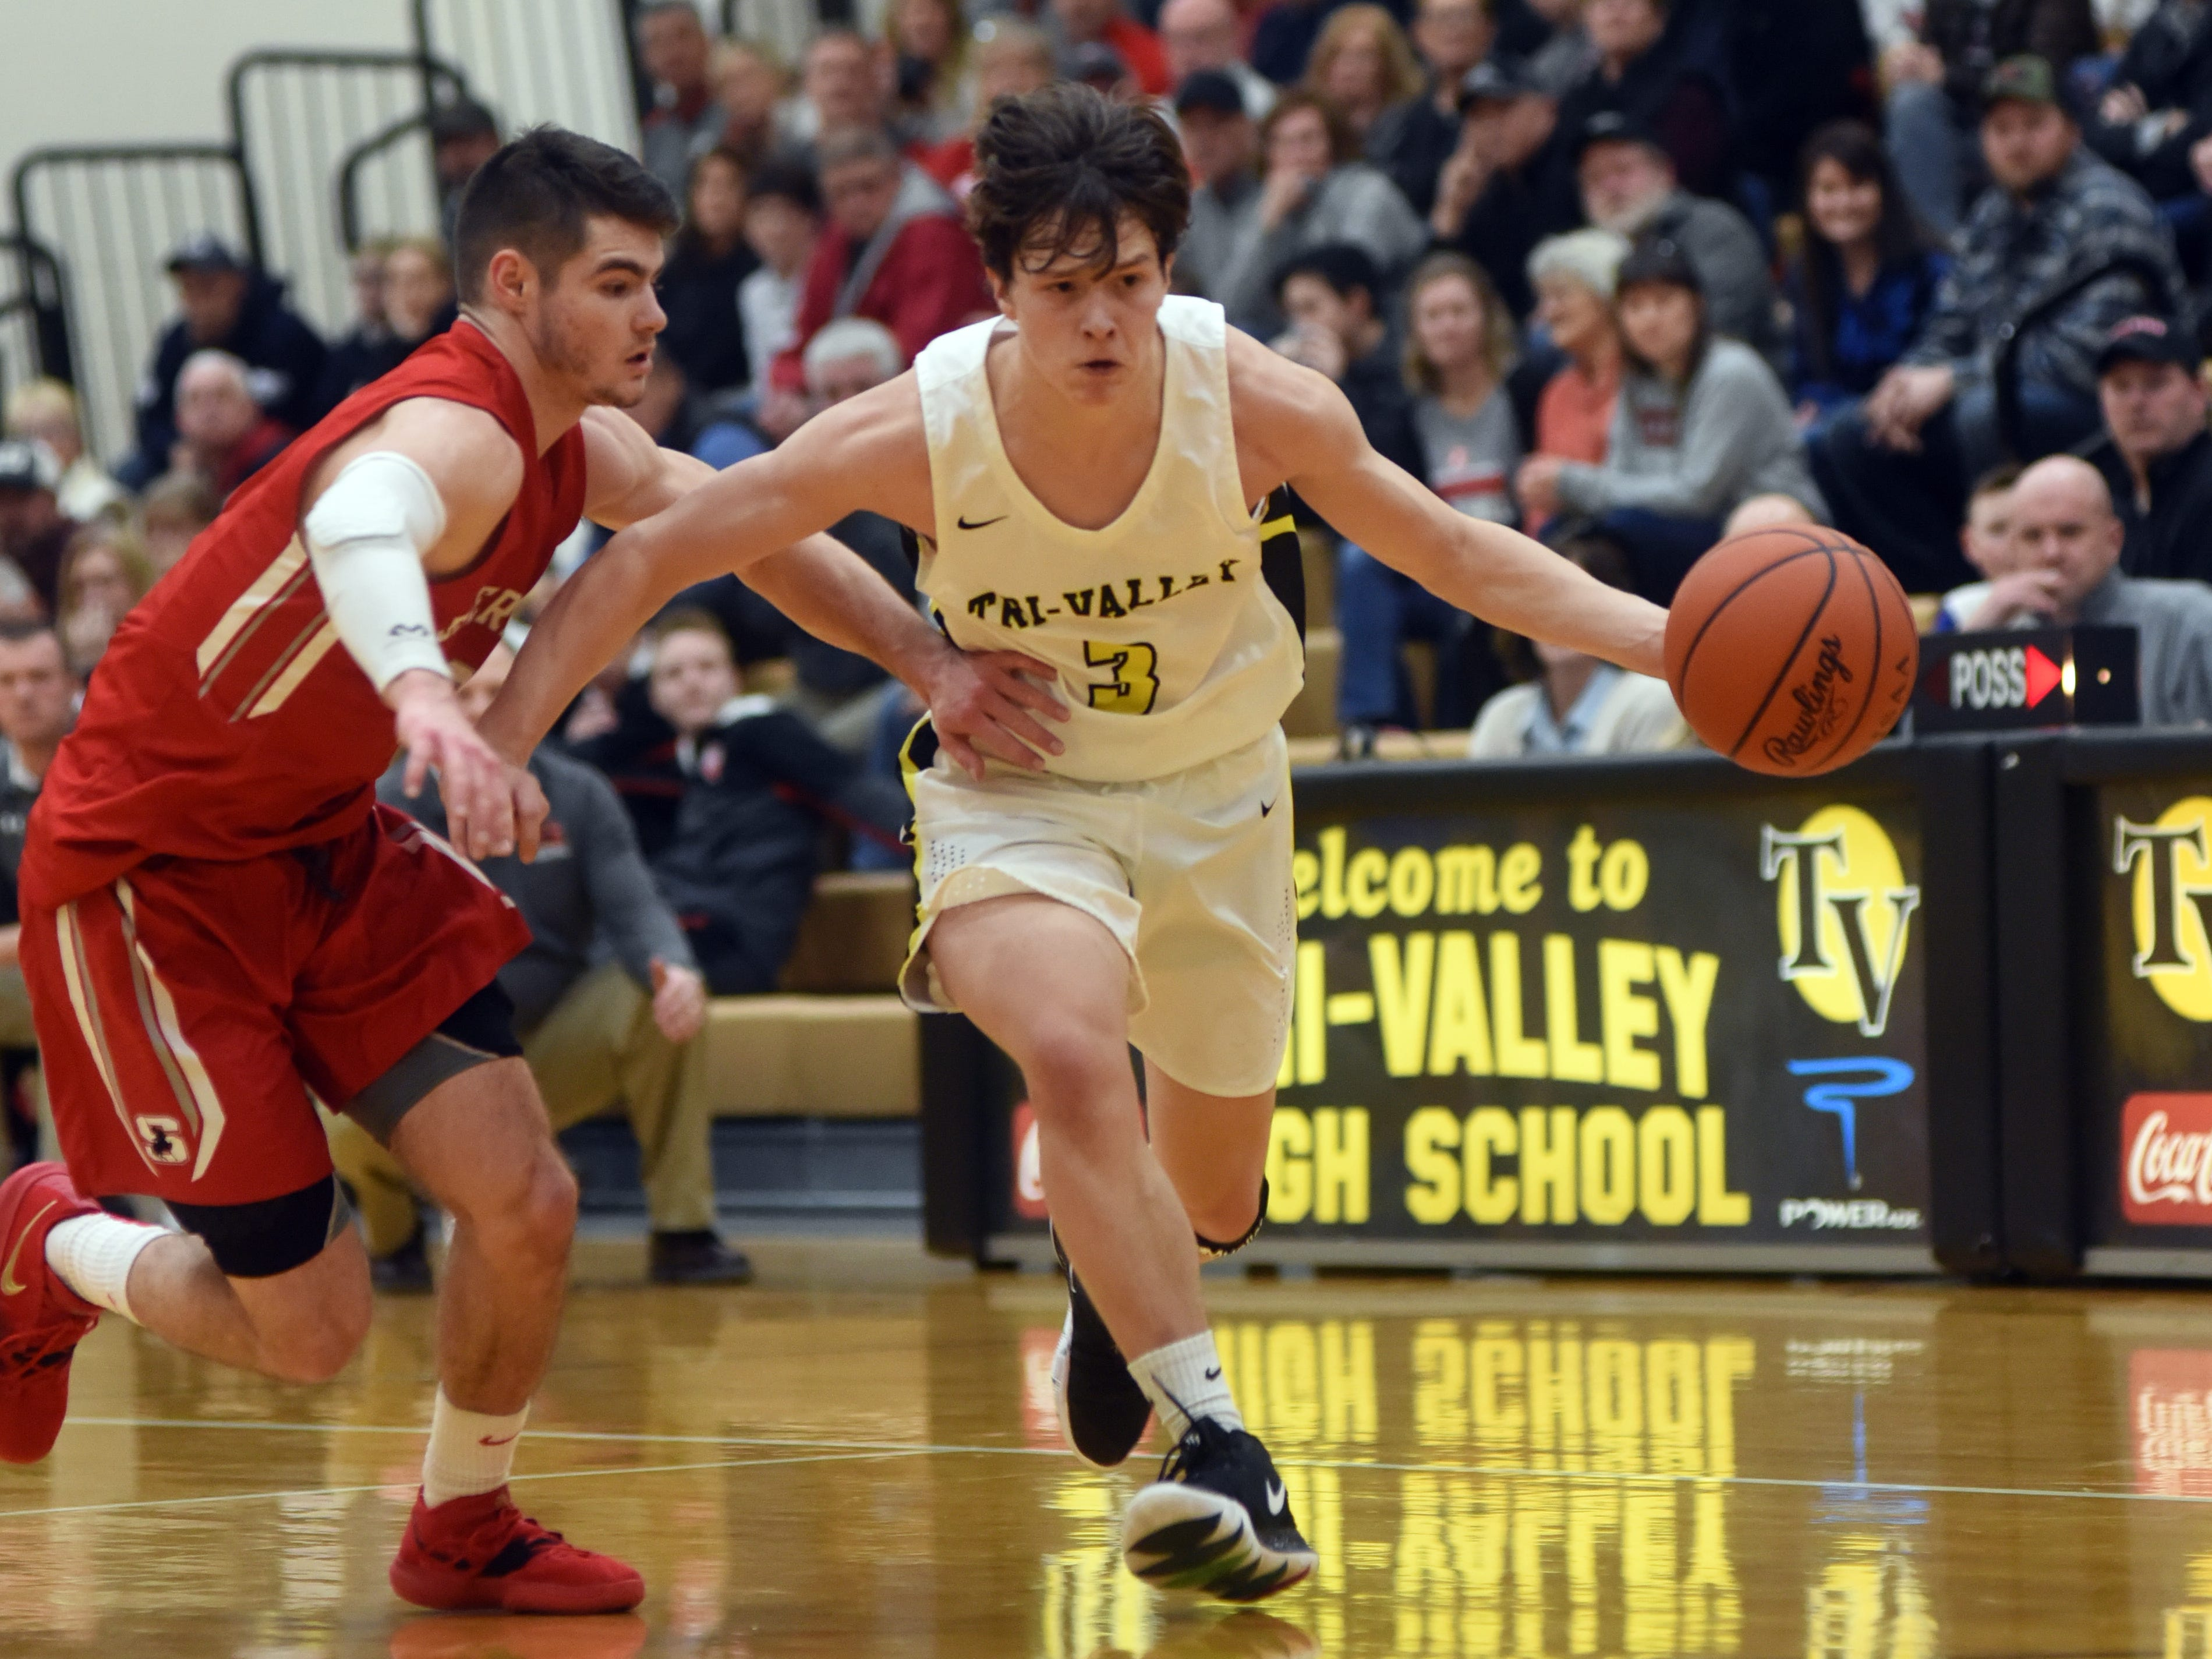 Tri-Valley's Matt King dribbles up court while being guarded by Sheridan's Ethan Heller on Friday night in Dresden.